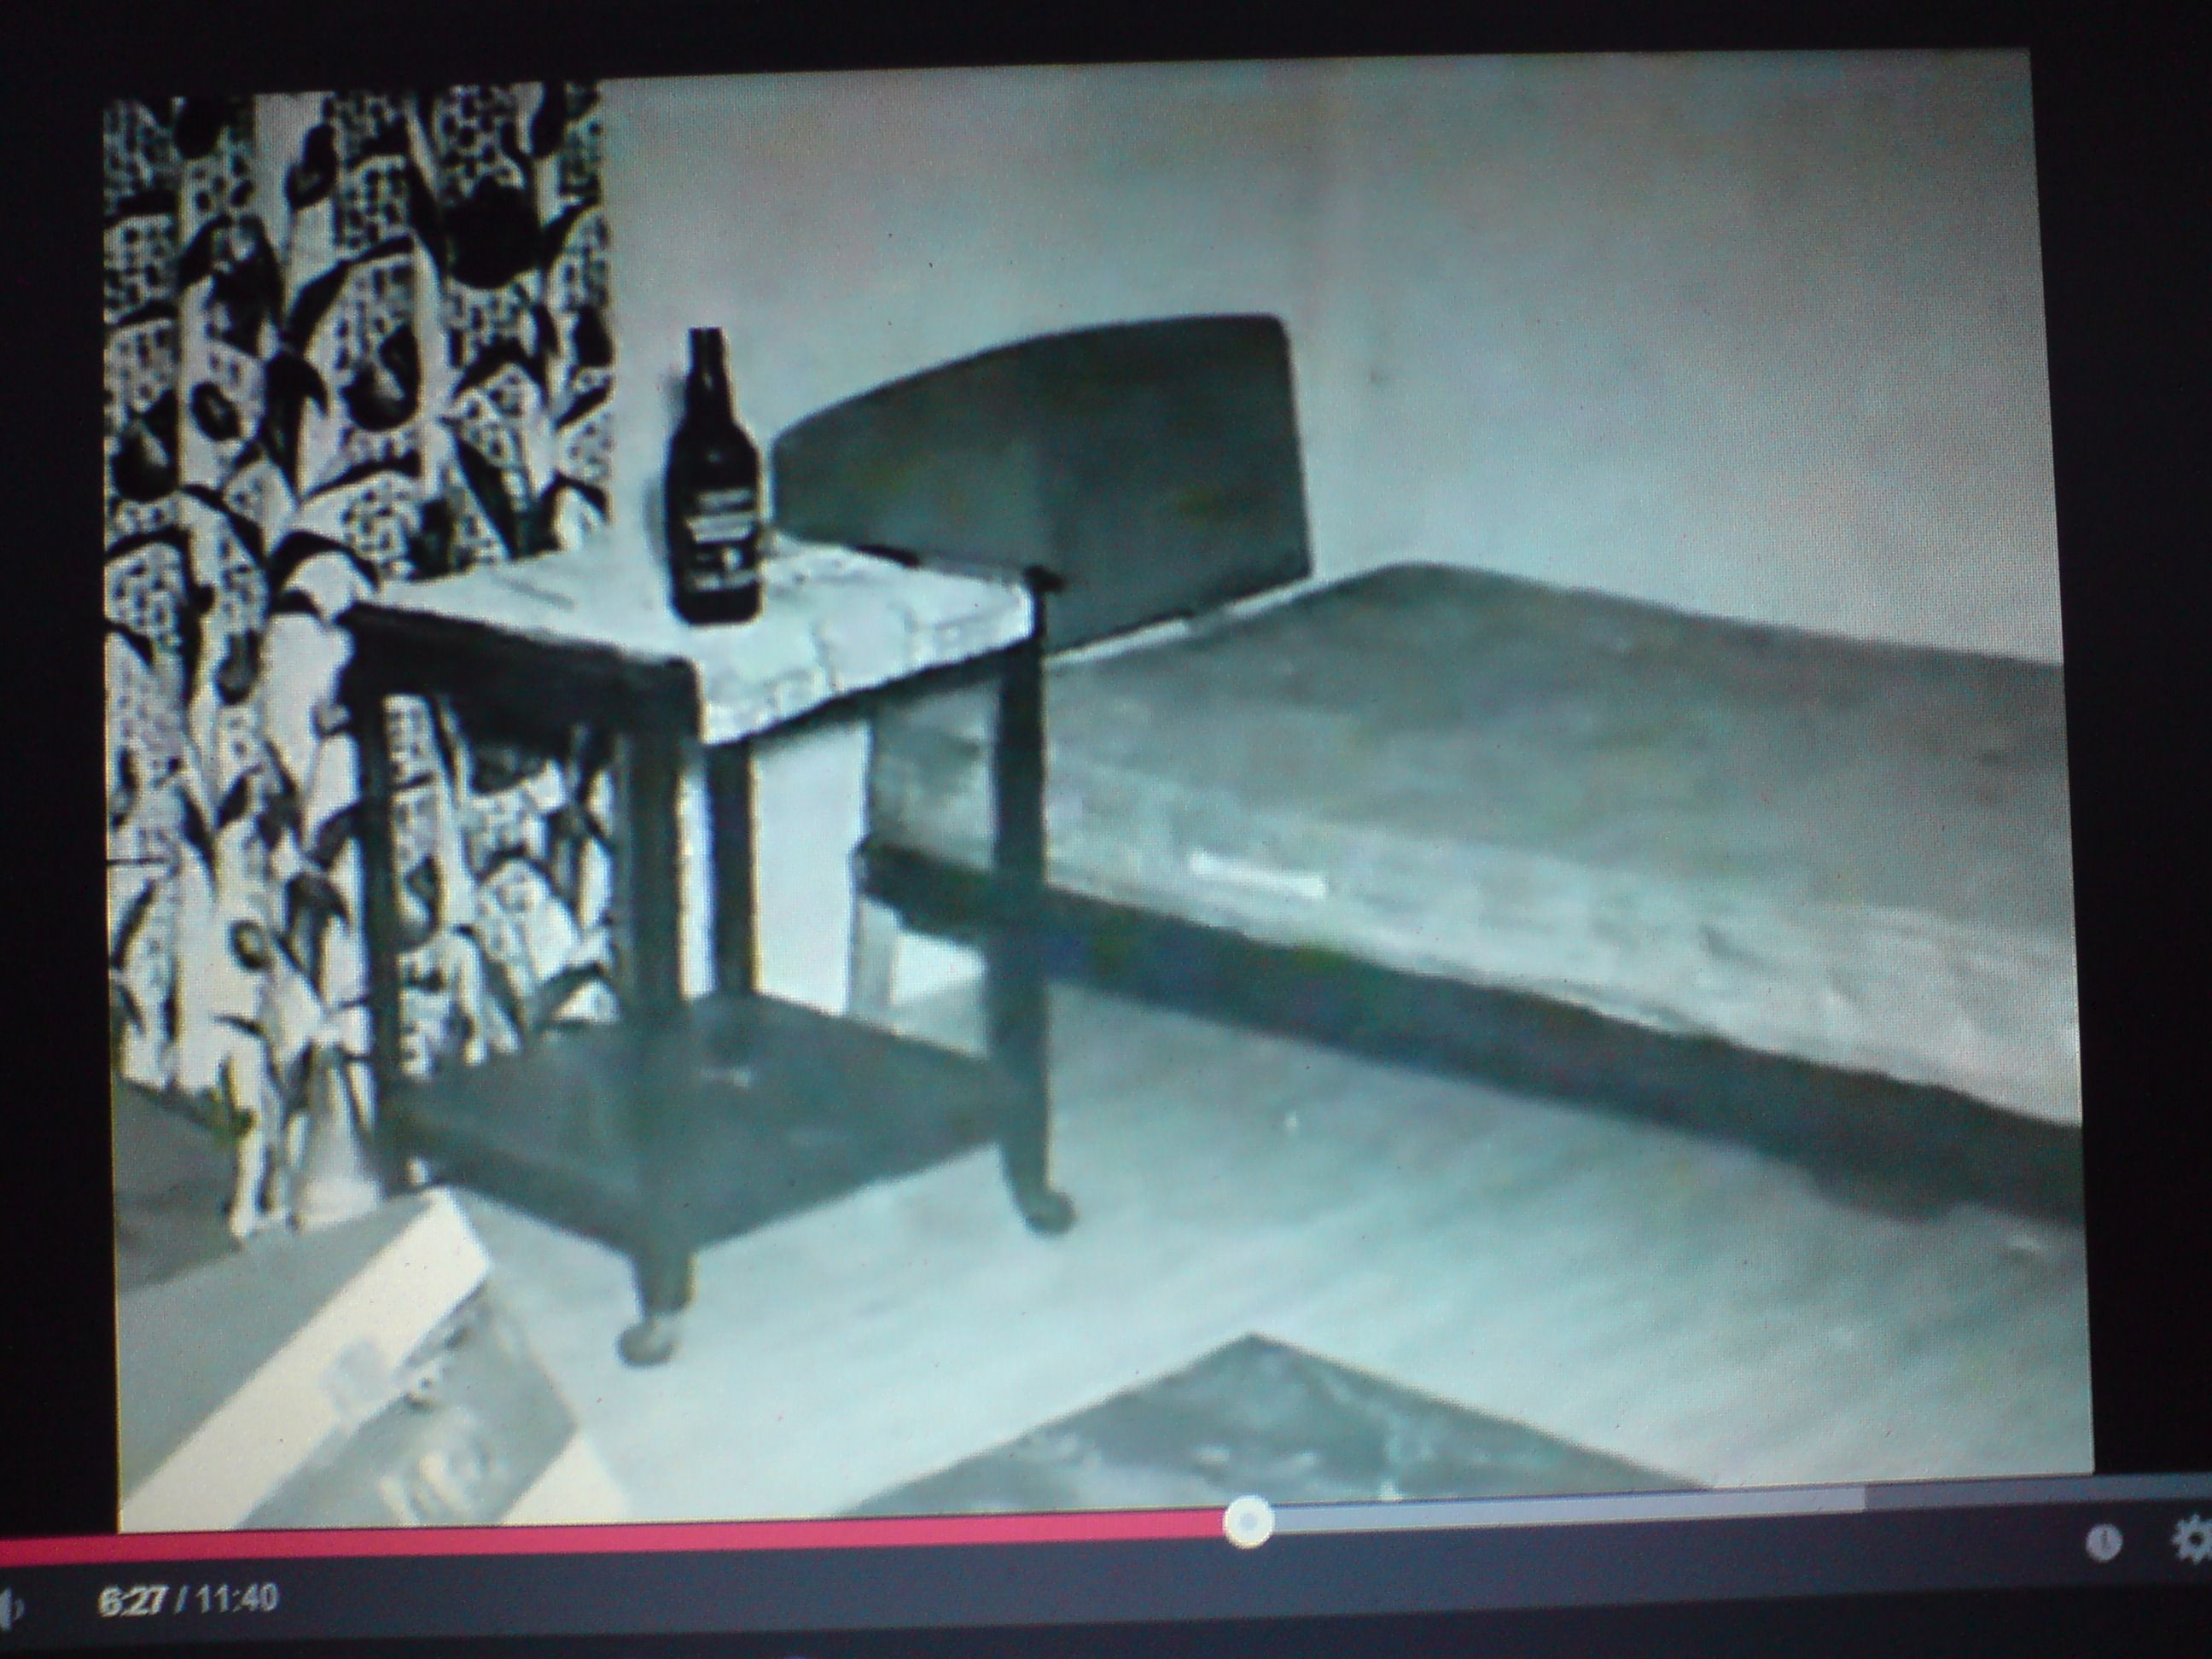 Lesley Bedroom Furniture Collection Myra Hindleys Bedroom Lesley Ann Downey Was Murdered On This Bed